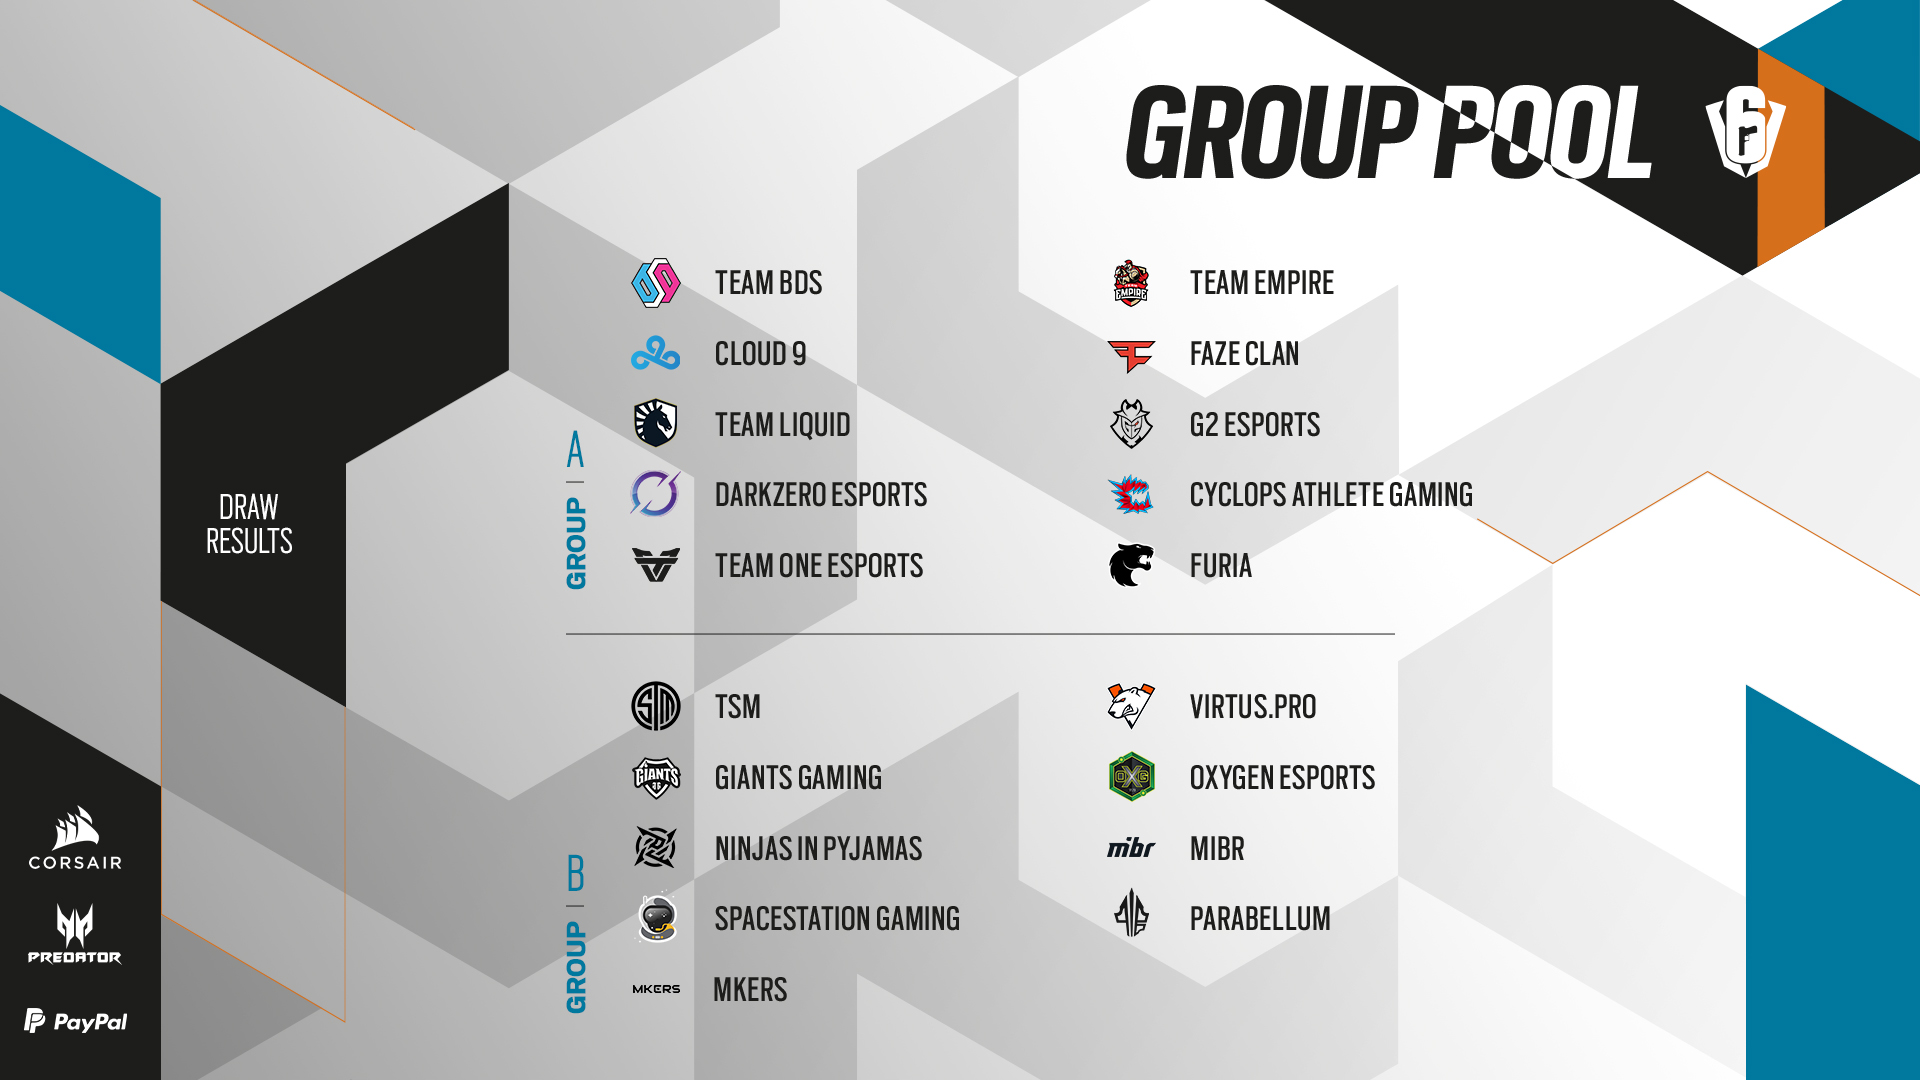 R6Esports_SI2021_Groupstage_Pool_20210427_6PM_CEST-2510226087acdf93d235.20251507.jpg